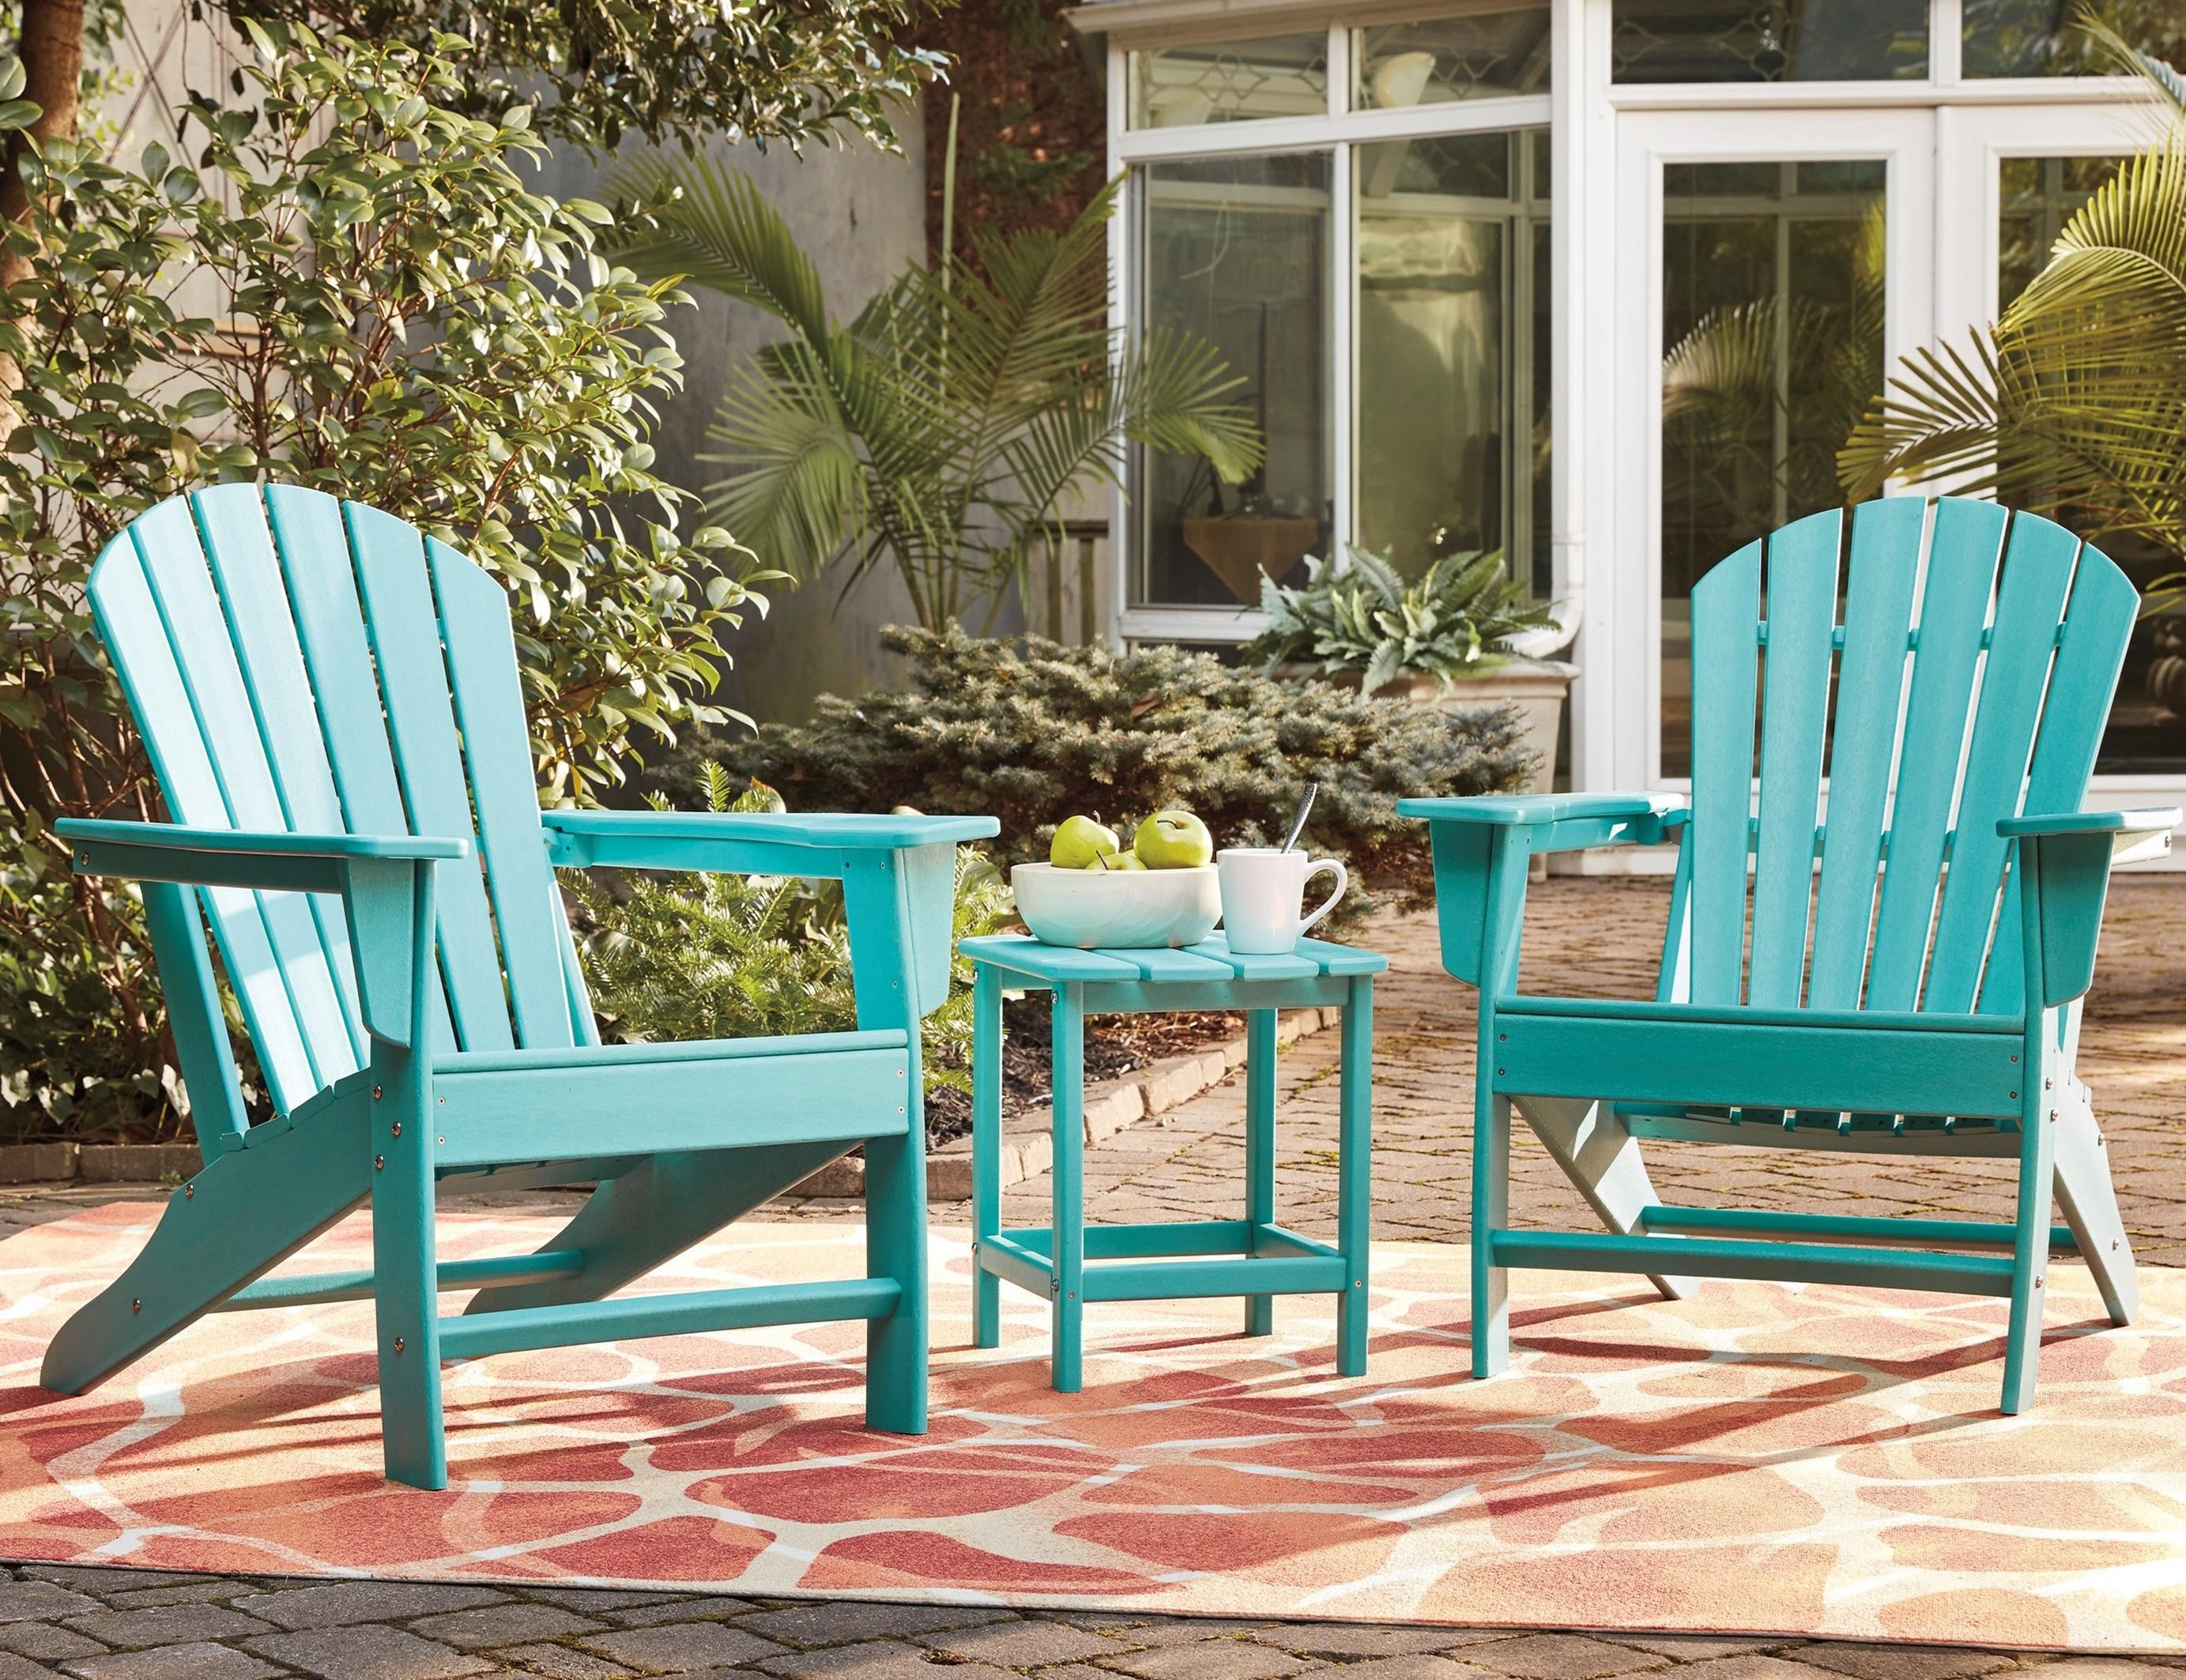 Sundown Treasure 2 Adirondack Chairs and End Table Set by Signature at Walker's Furniture